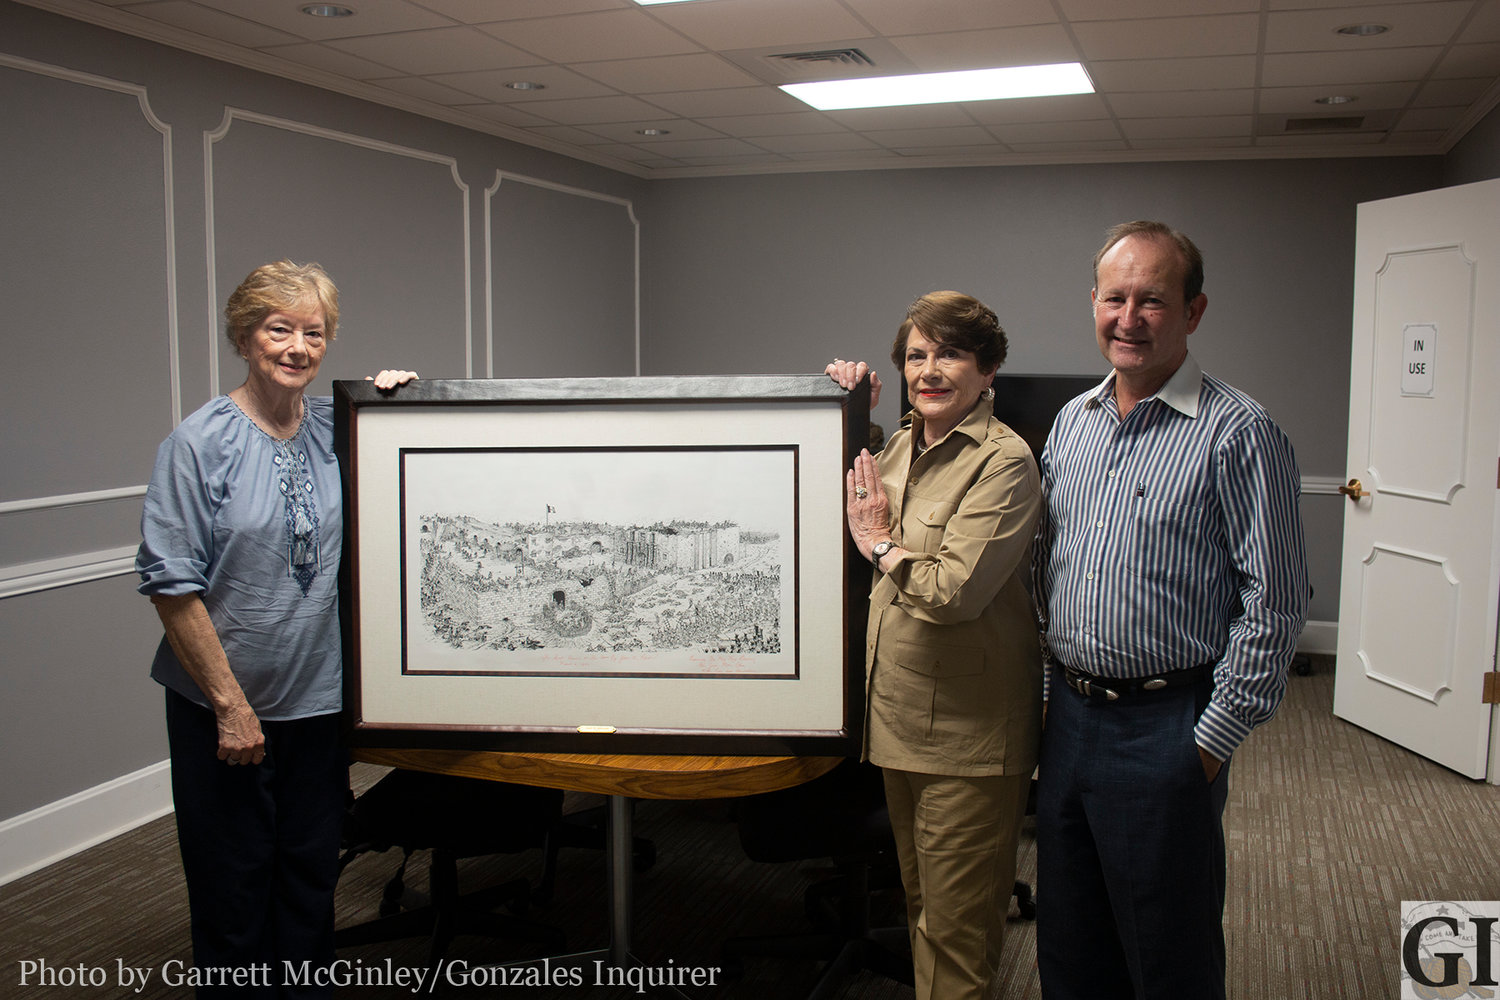 Clint Hille, Carol Eakman and Library Board President Vicki Frenzel pose with the James Robertson drawing donated by Rex Bushong on behalf of his late wife Vickie.